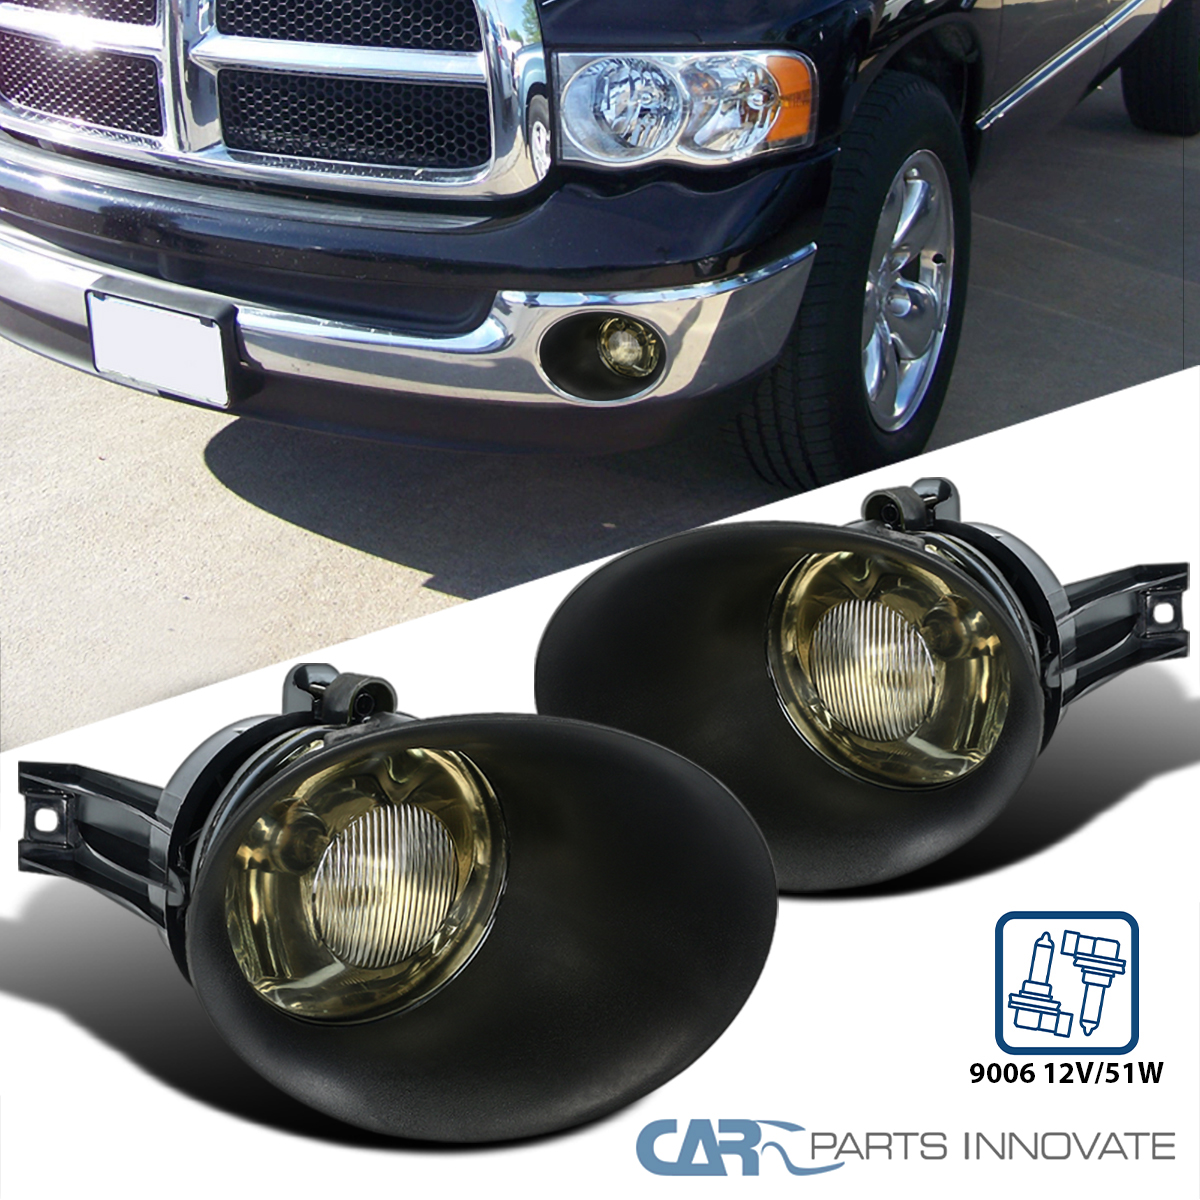 -Black Driver side WITH install kit 6 inch 100W Halogen 2008 Peterbilt MODEL 320 COE Side Roof mount spotlight